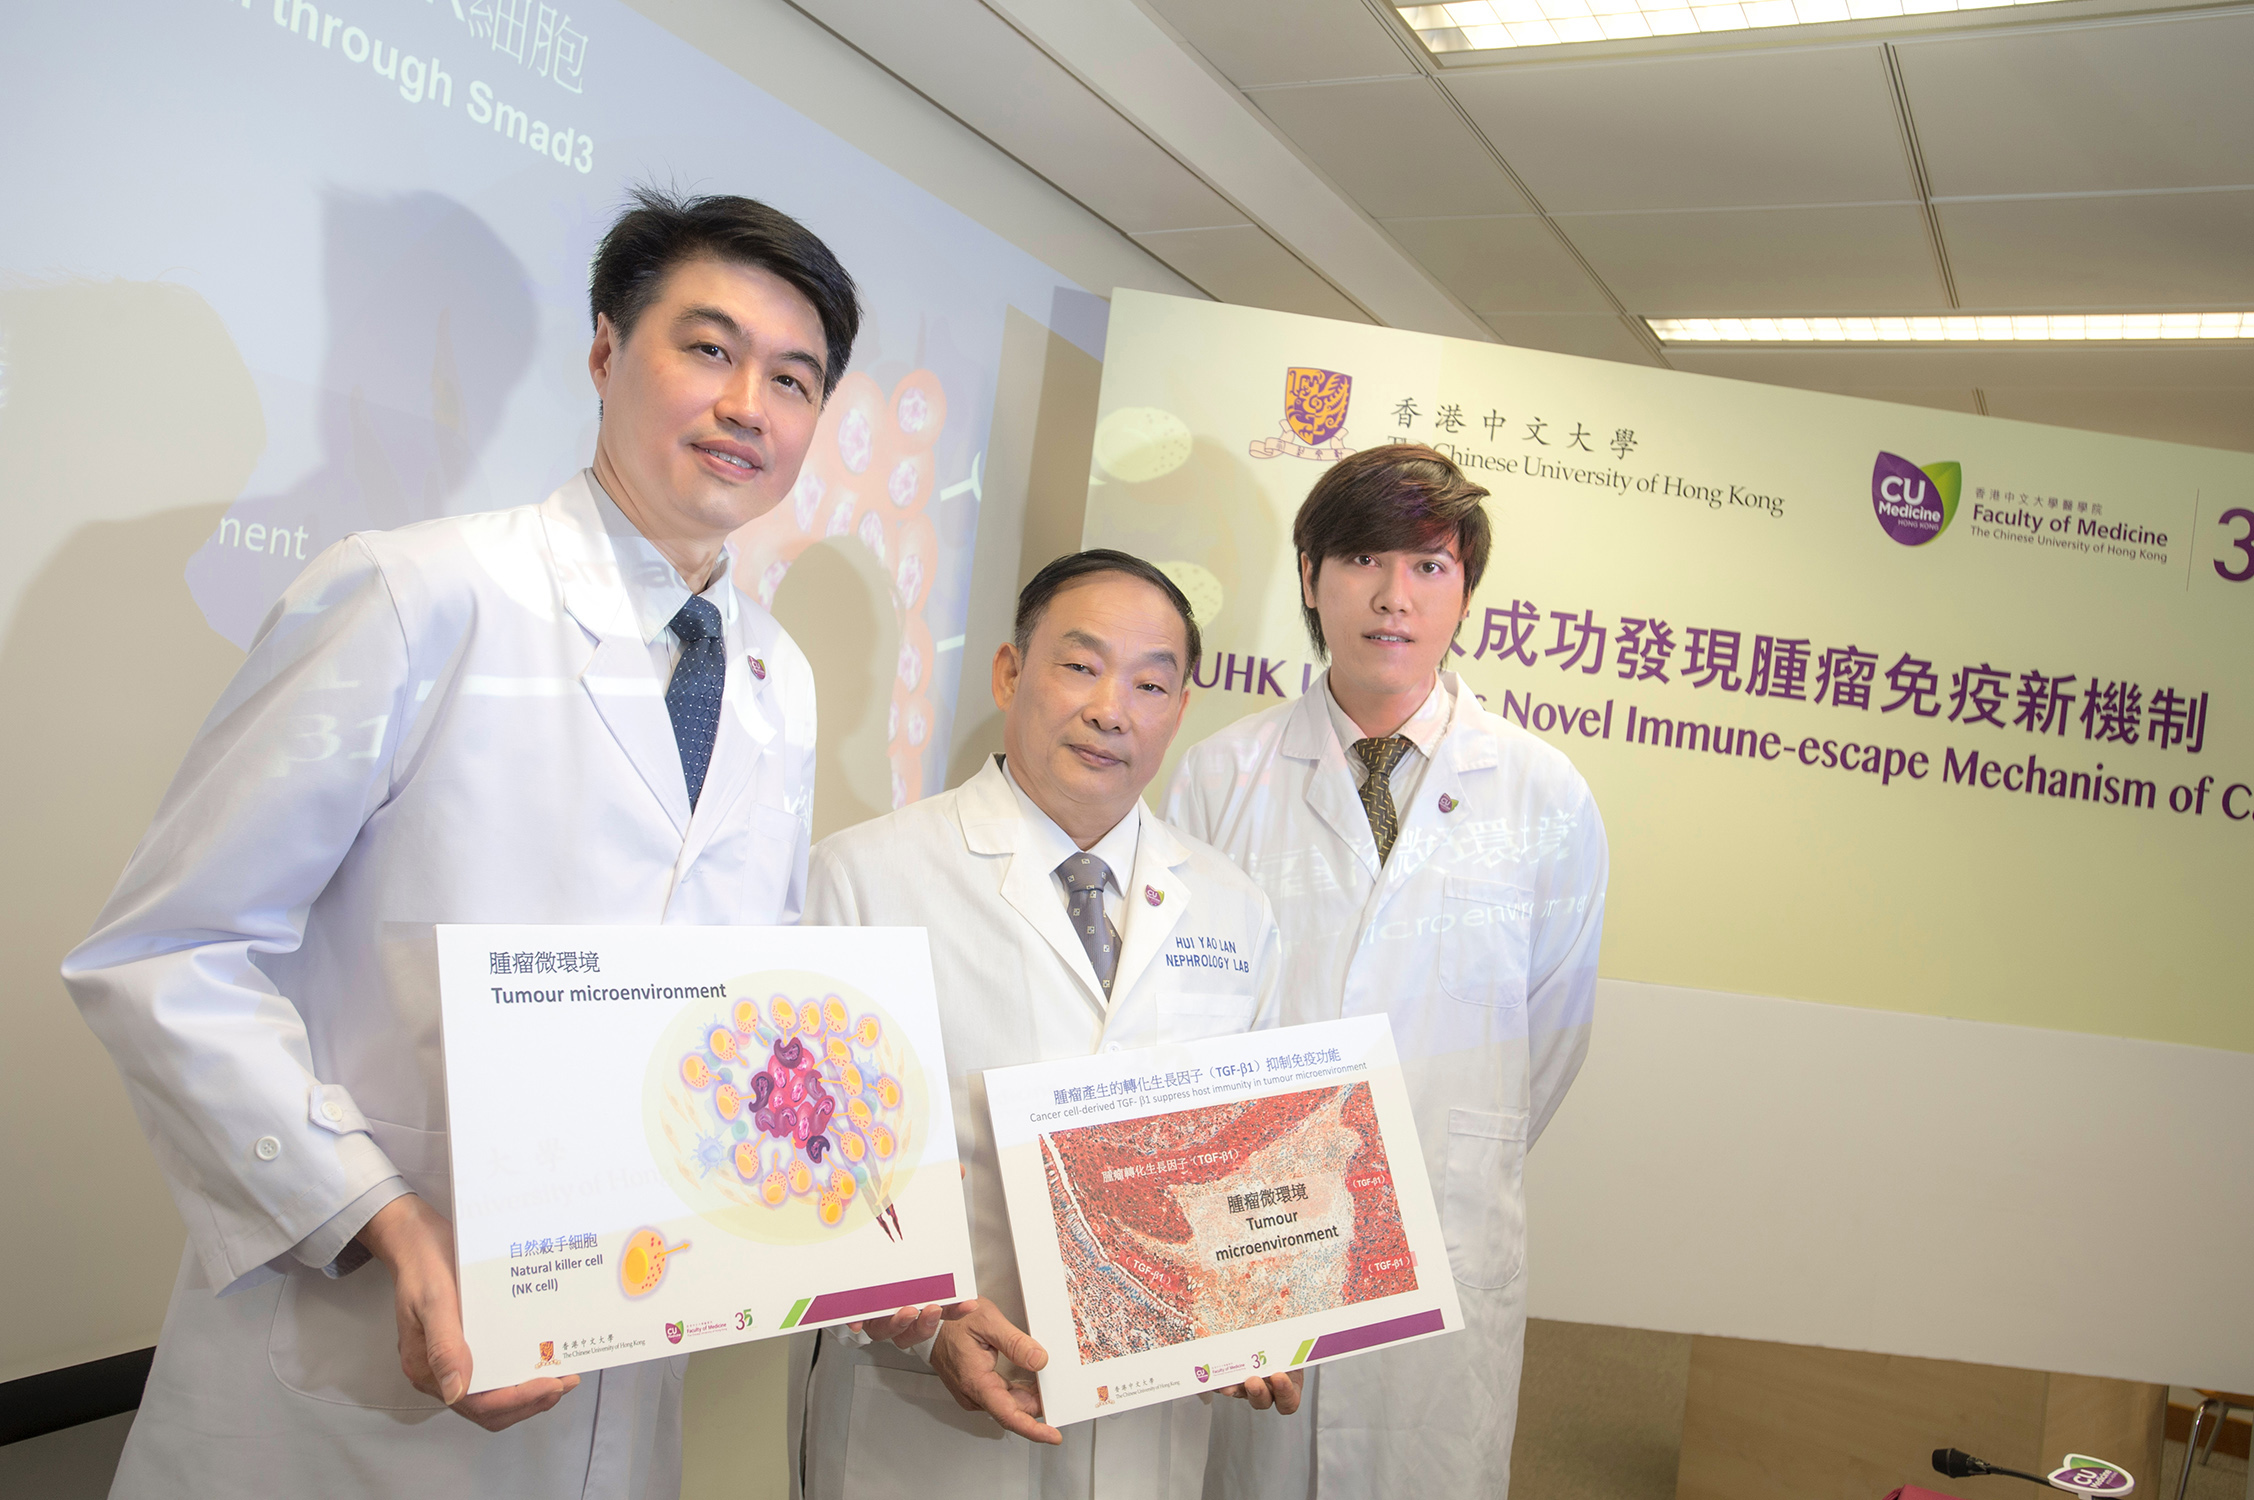 The Faculty of Medicine of CUHK uncovers how cancer cells defeat the frontline of immunity, thereby pointing new direction for immunotherapy. From left: Prof. Ka Fai TO, Chairman, Department of Anatomical and Cellular Pathology, Faculty of Medicine, CUHK; Prof. Hui Yao LAN, Choh-Ming Li Professor of Biomedical Sciences and Assistant Dean (Research), Faculty of Medicine, CUHK; Dr. Patrick Ming Kuen TANG, Research Associate, Department of of Anatomical and Cellular Pathology, Faculty of Medicine, CUHK.